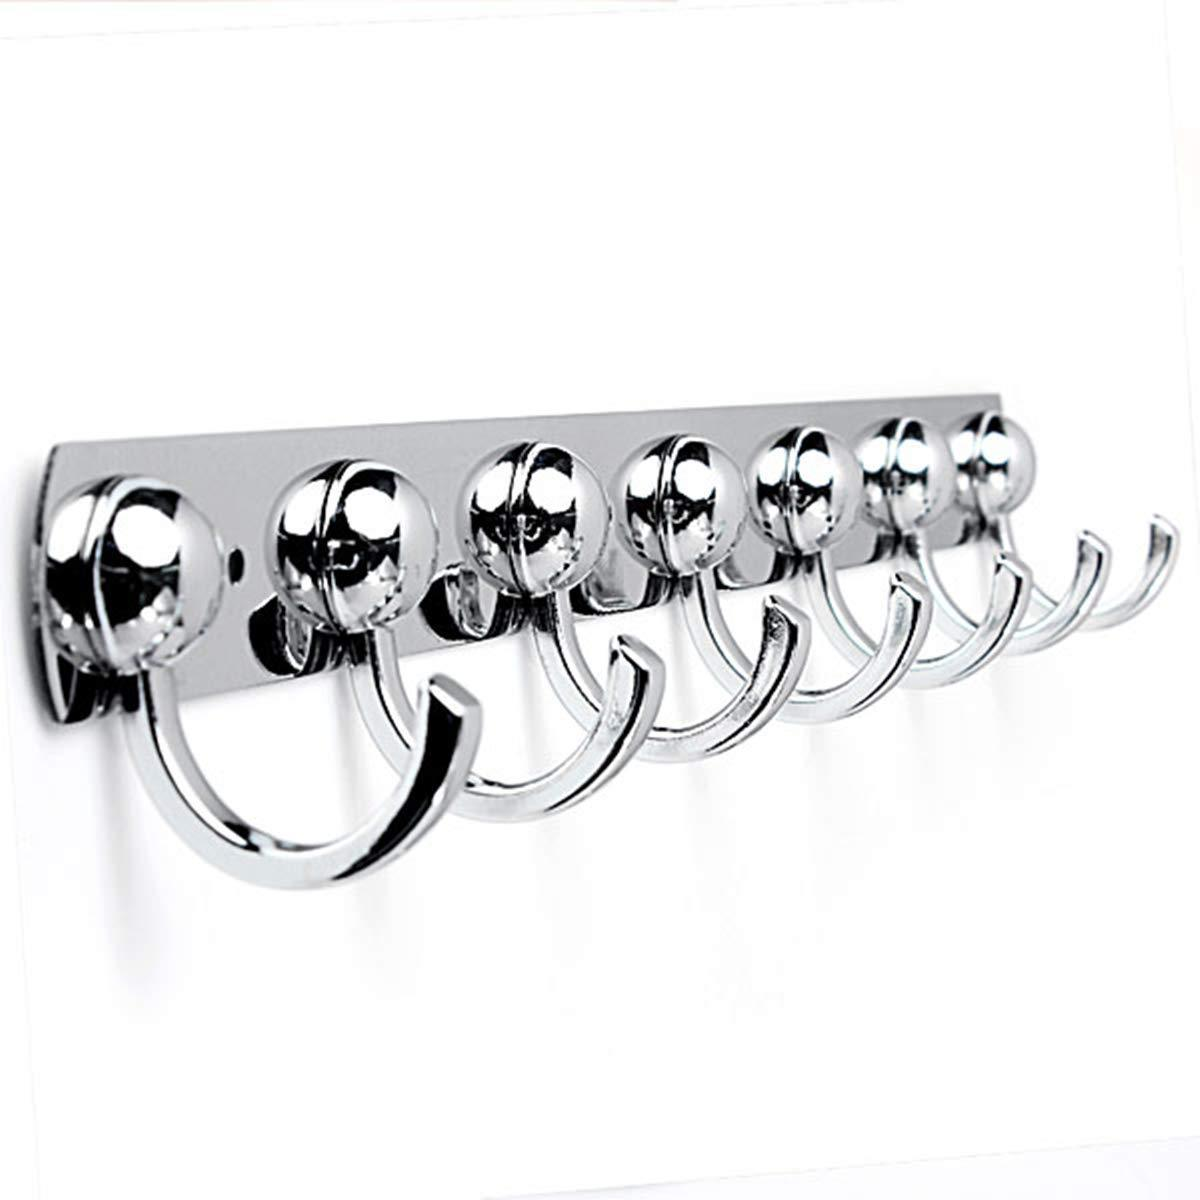 Order now kingso utility hooks kitchen stainless holder rack coat towel hat bathroom wall hanger 7 hooks